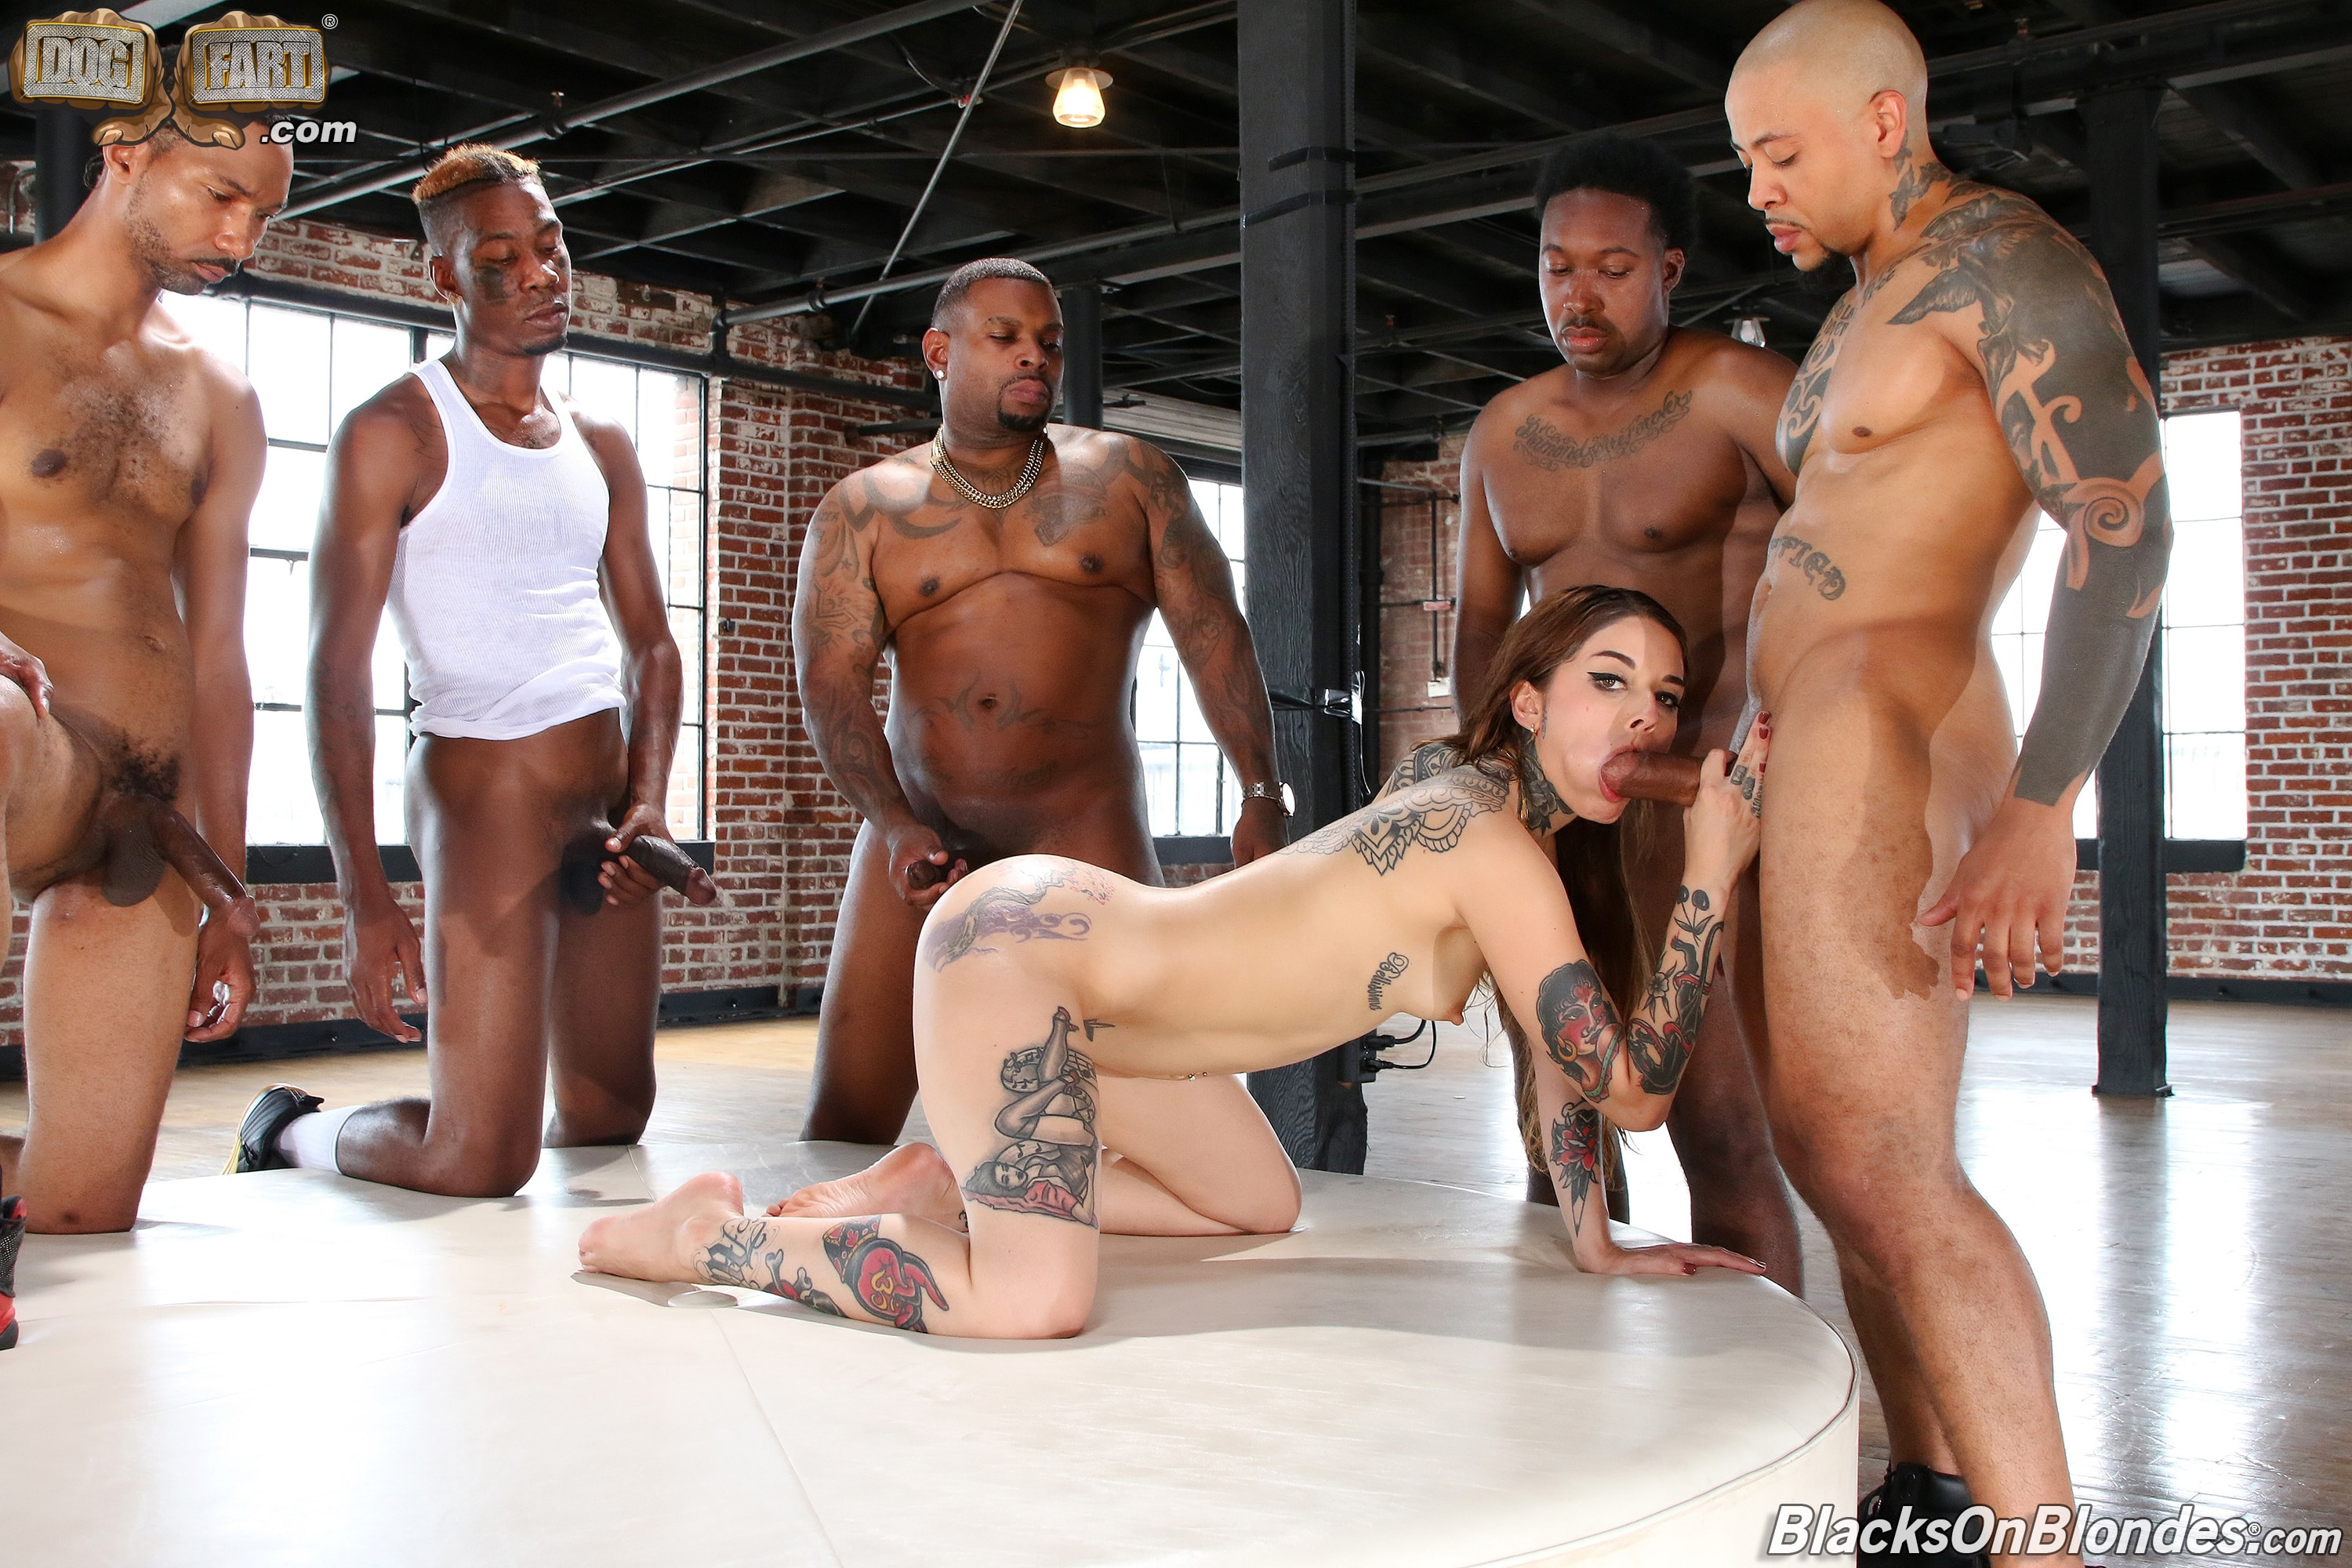 Dogfart '- Blacks On Blondes - Scene 3' starring Vanessa Vega (Photo 7)